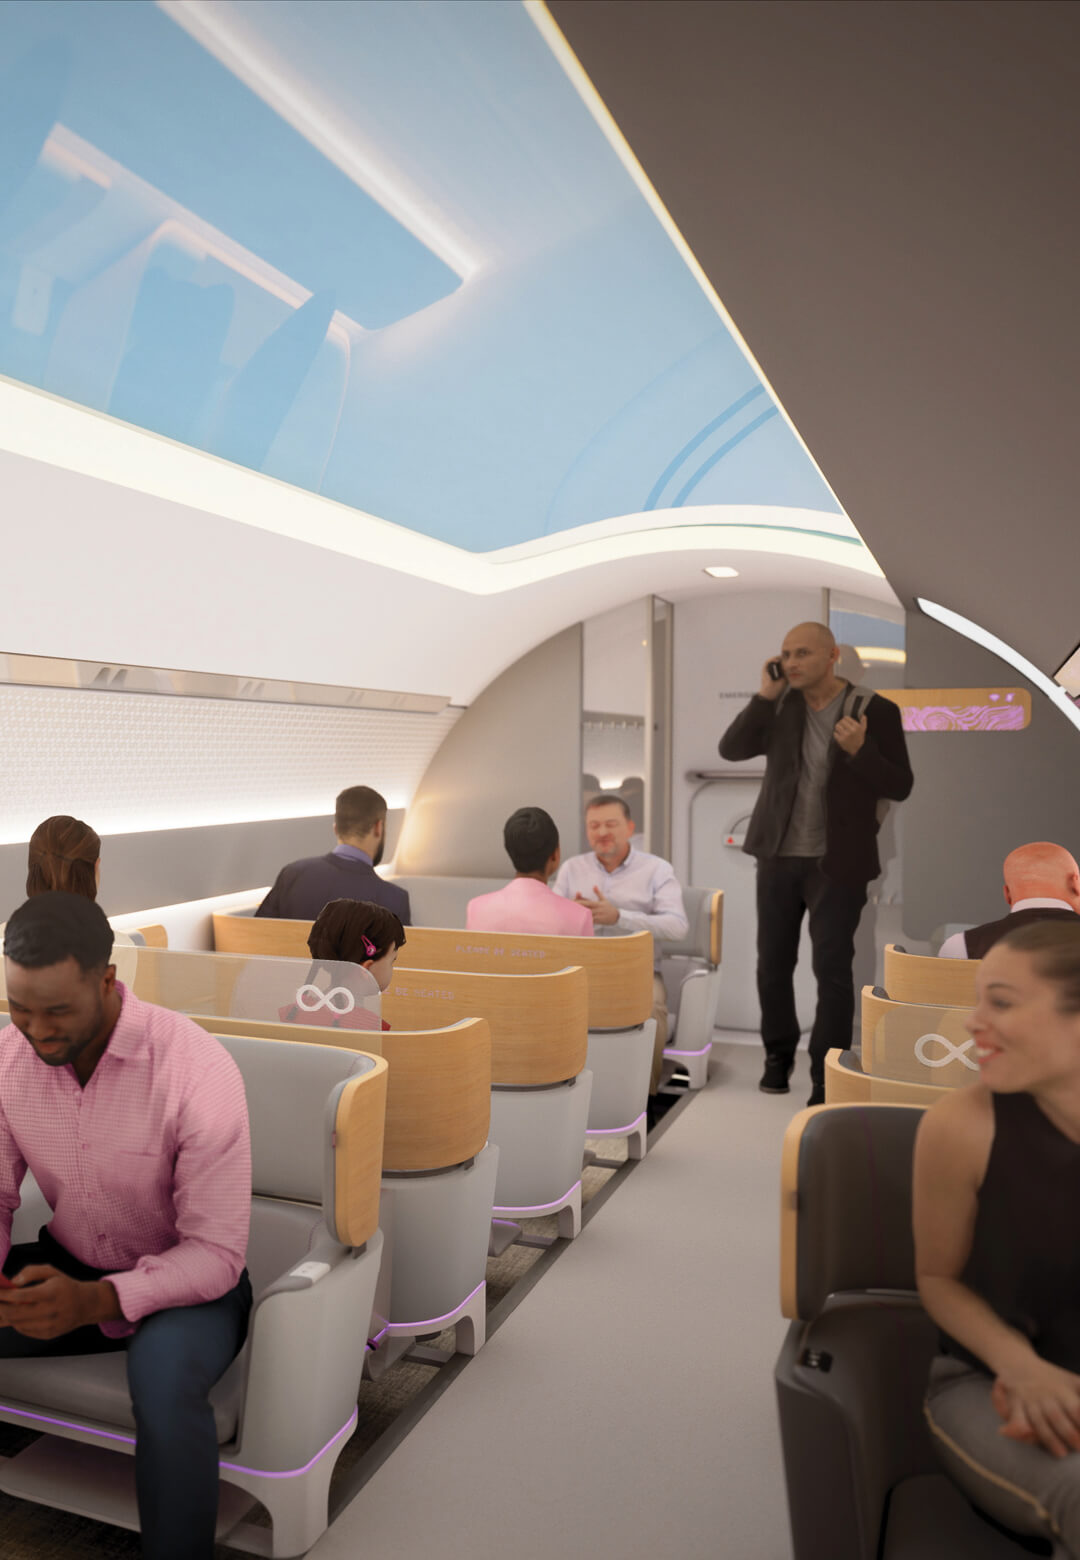 Virgin Hyperloop unveils Passenger Experience Vision | Virgin Hyperloop Designed by Bjarke Ingels Group and Teague | STIRworld